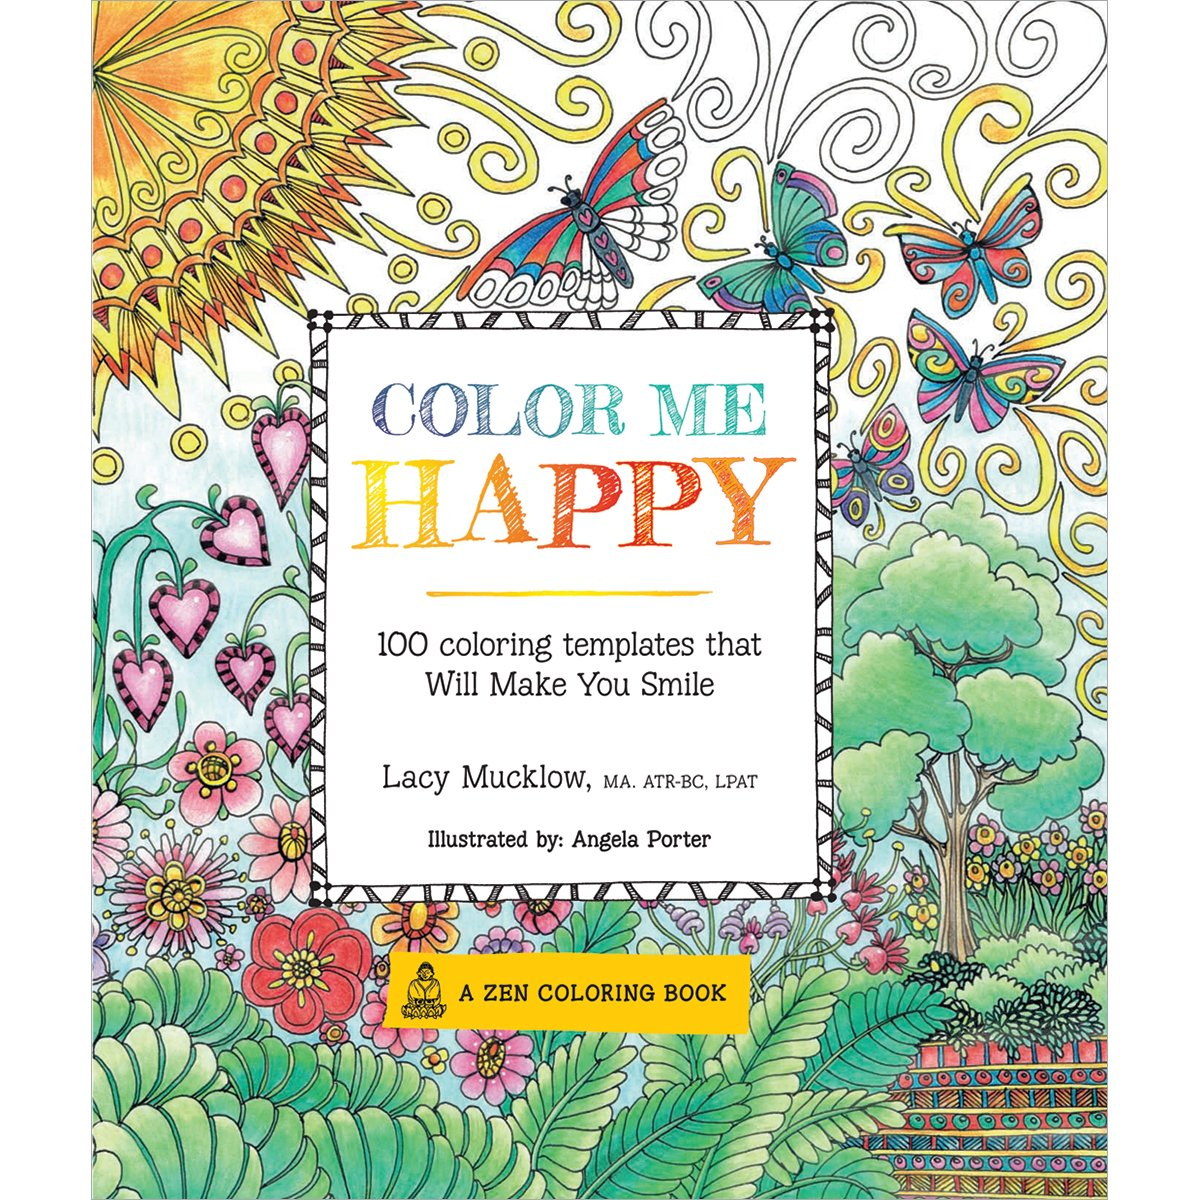 Zen colouring in book - Color Me Happy 100 Coloring Templates That Will Make You Smile A Zen Coloring Book